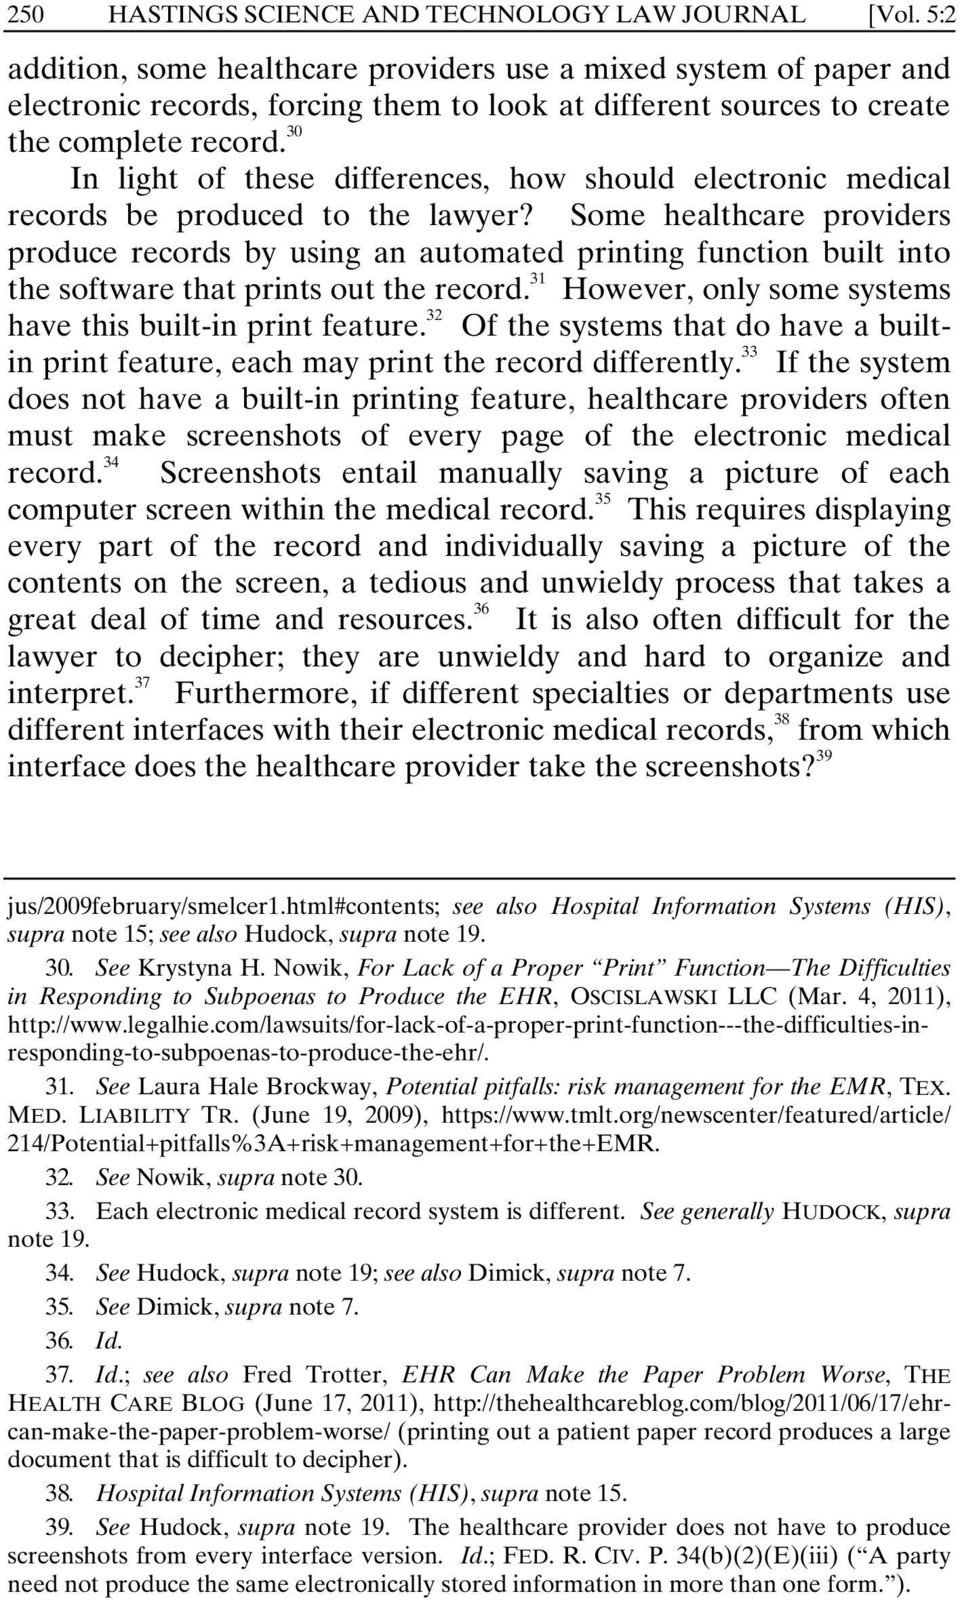 30 In light of these differences, how should electronic medical records be produced to the lawyer?